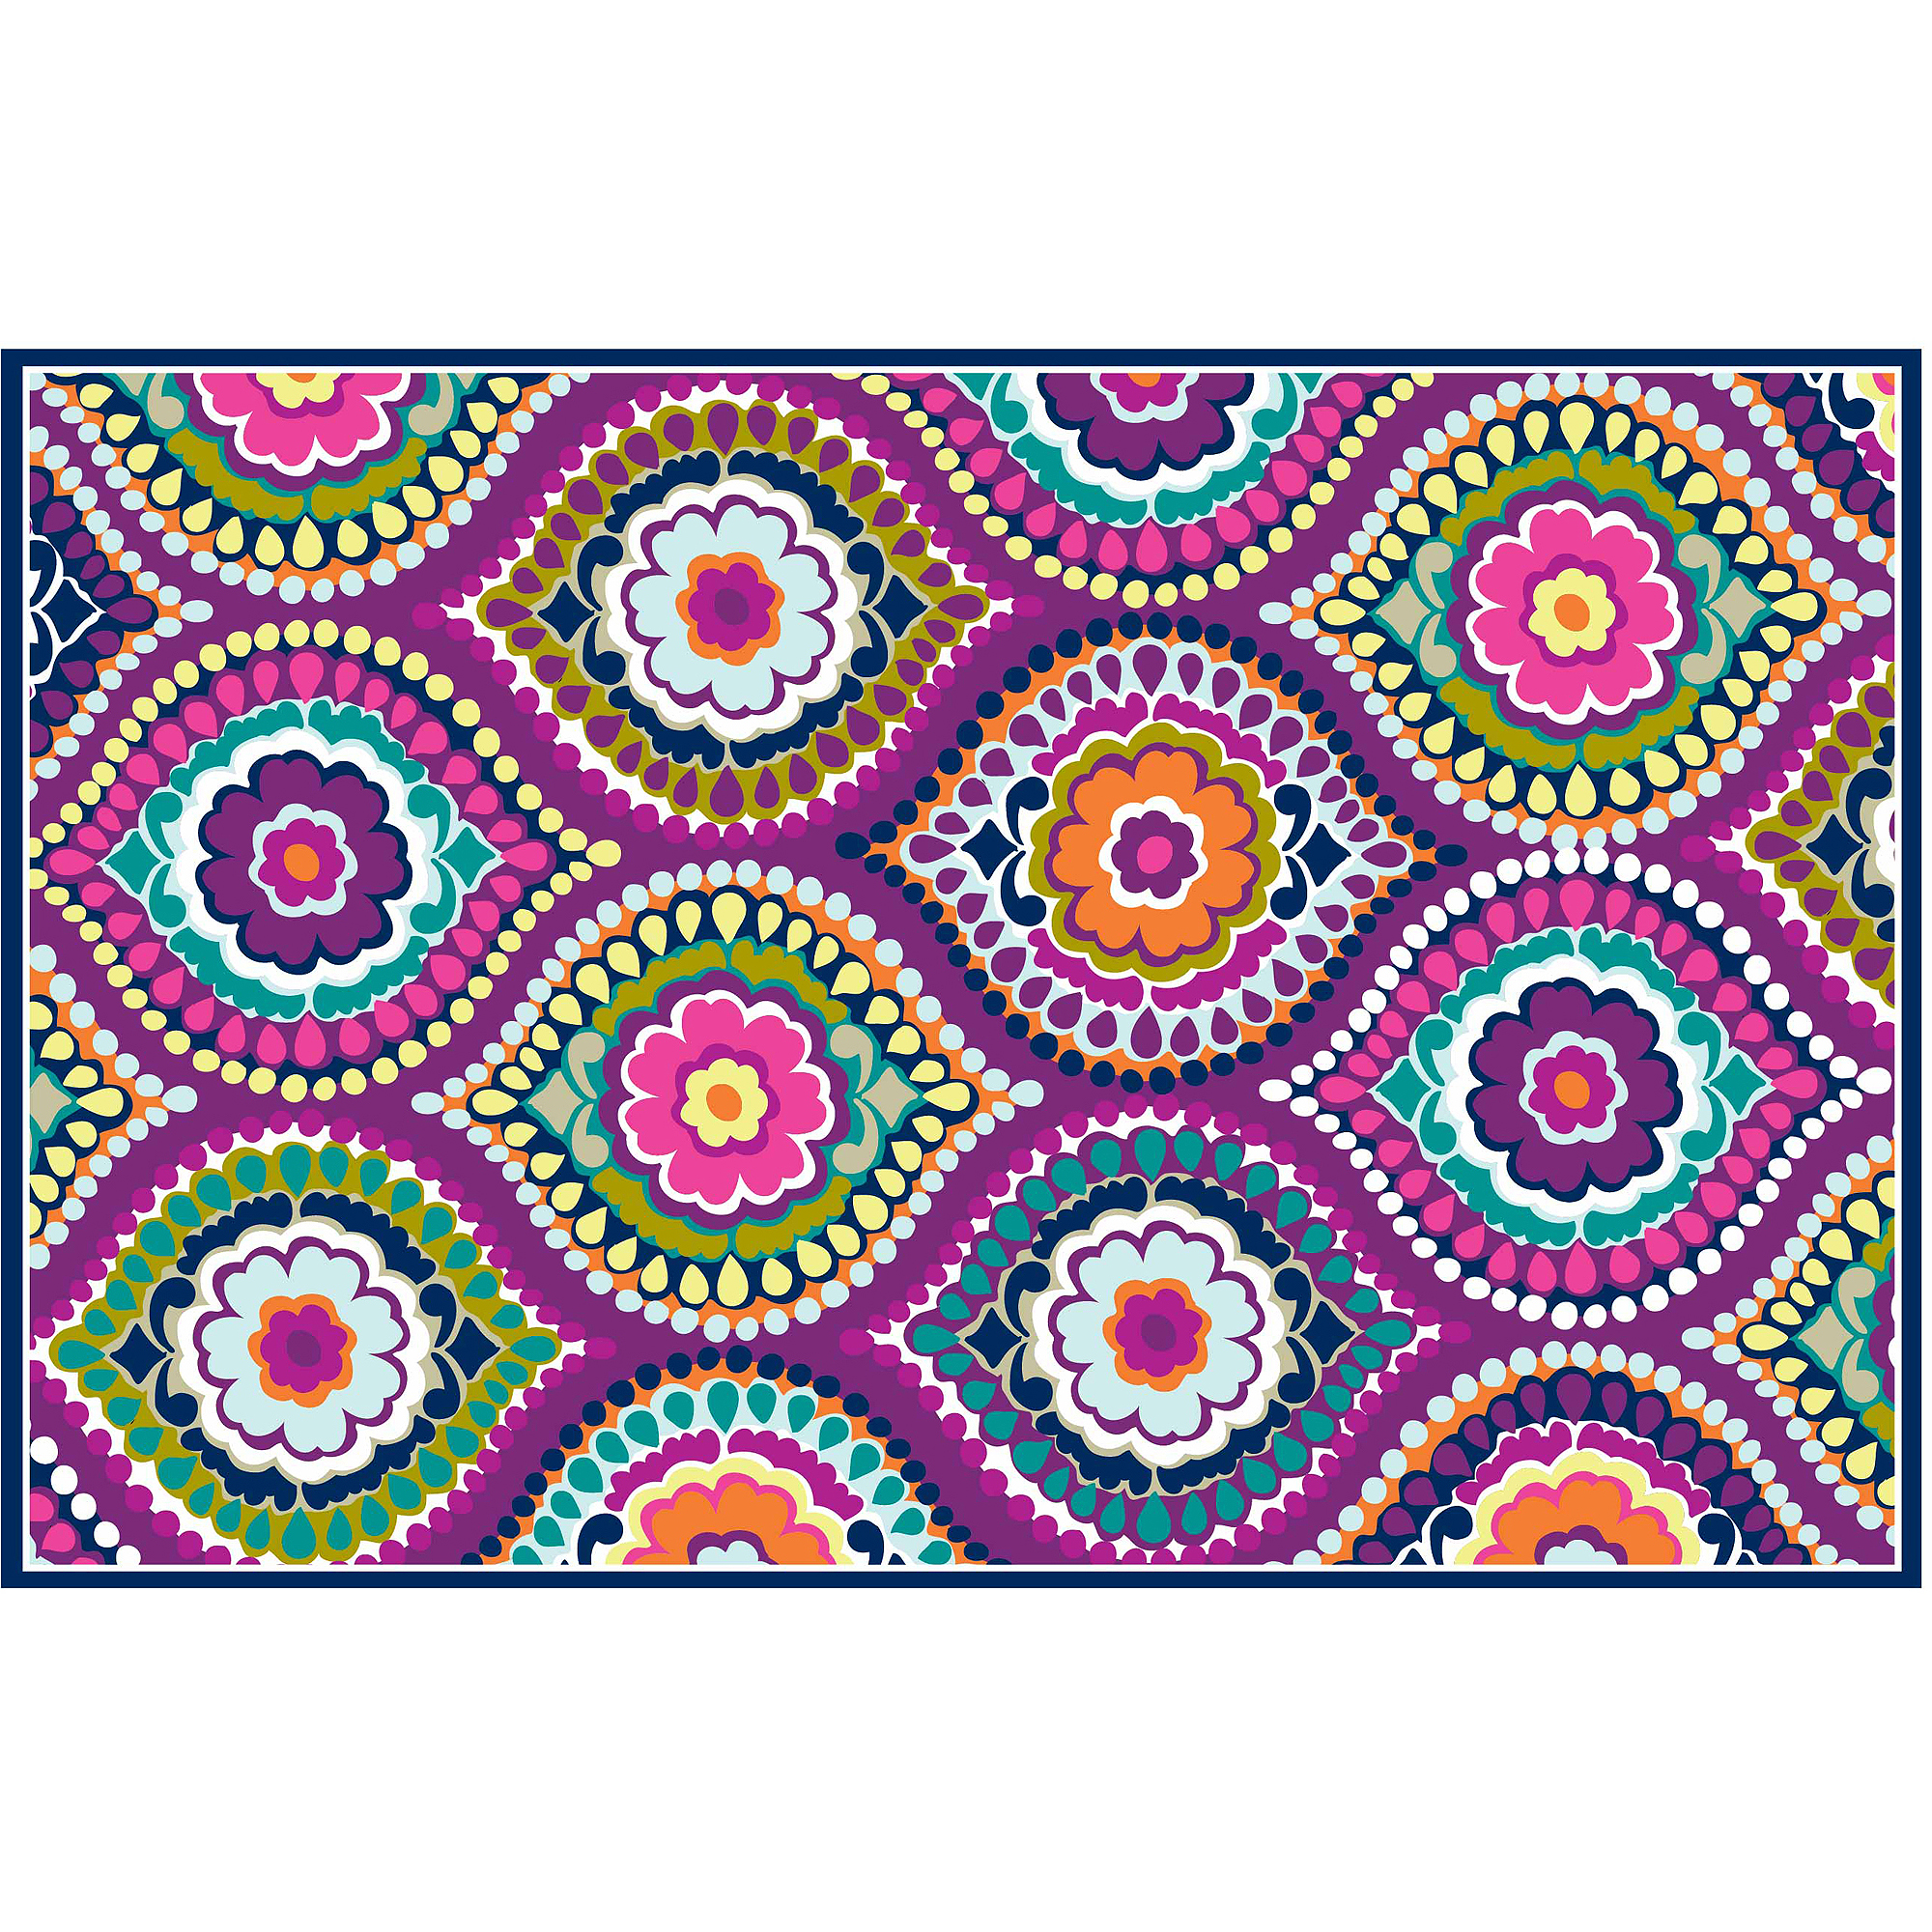 "your zone painters mosaic rug, purple, 4'8"" x 3'"